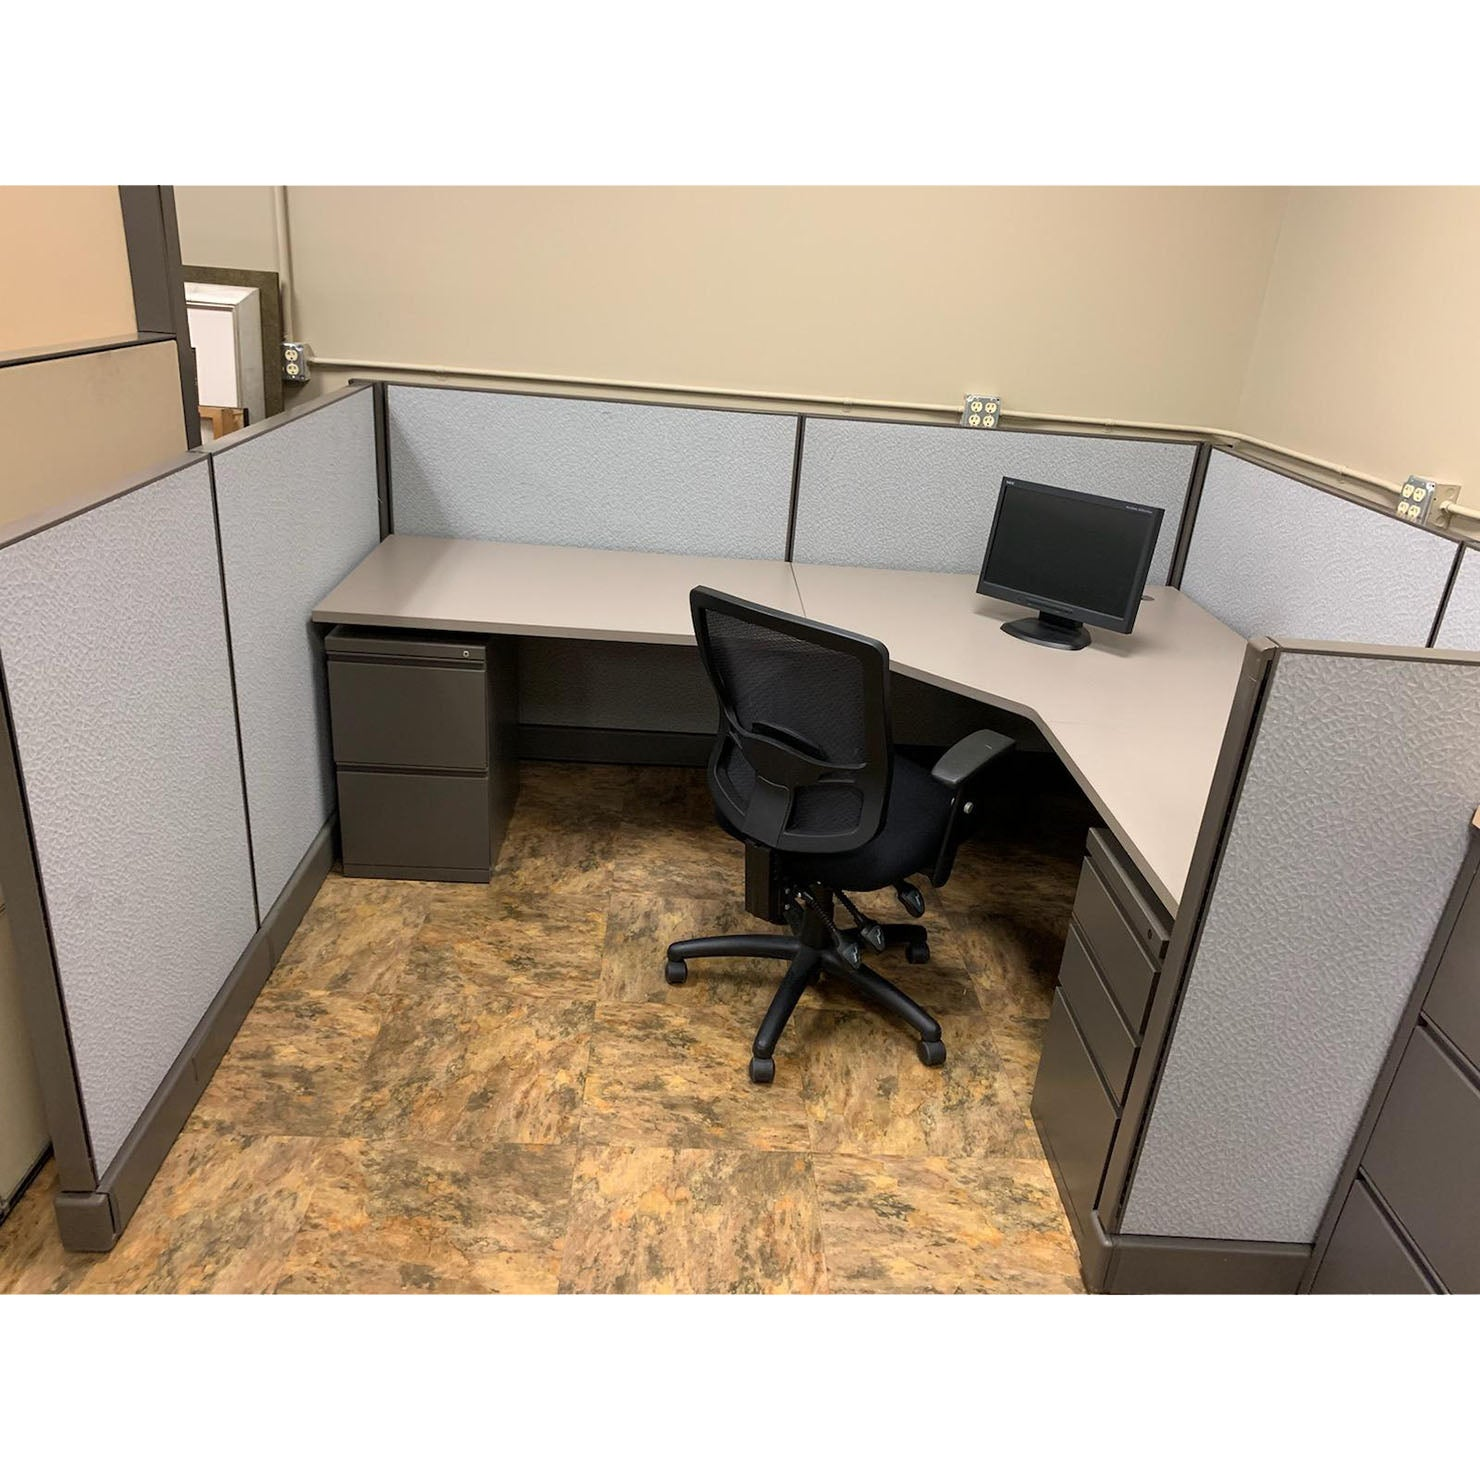 Herman Miller 6x8 cubicle